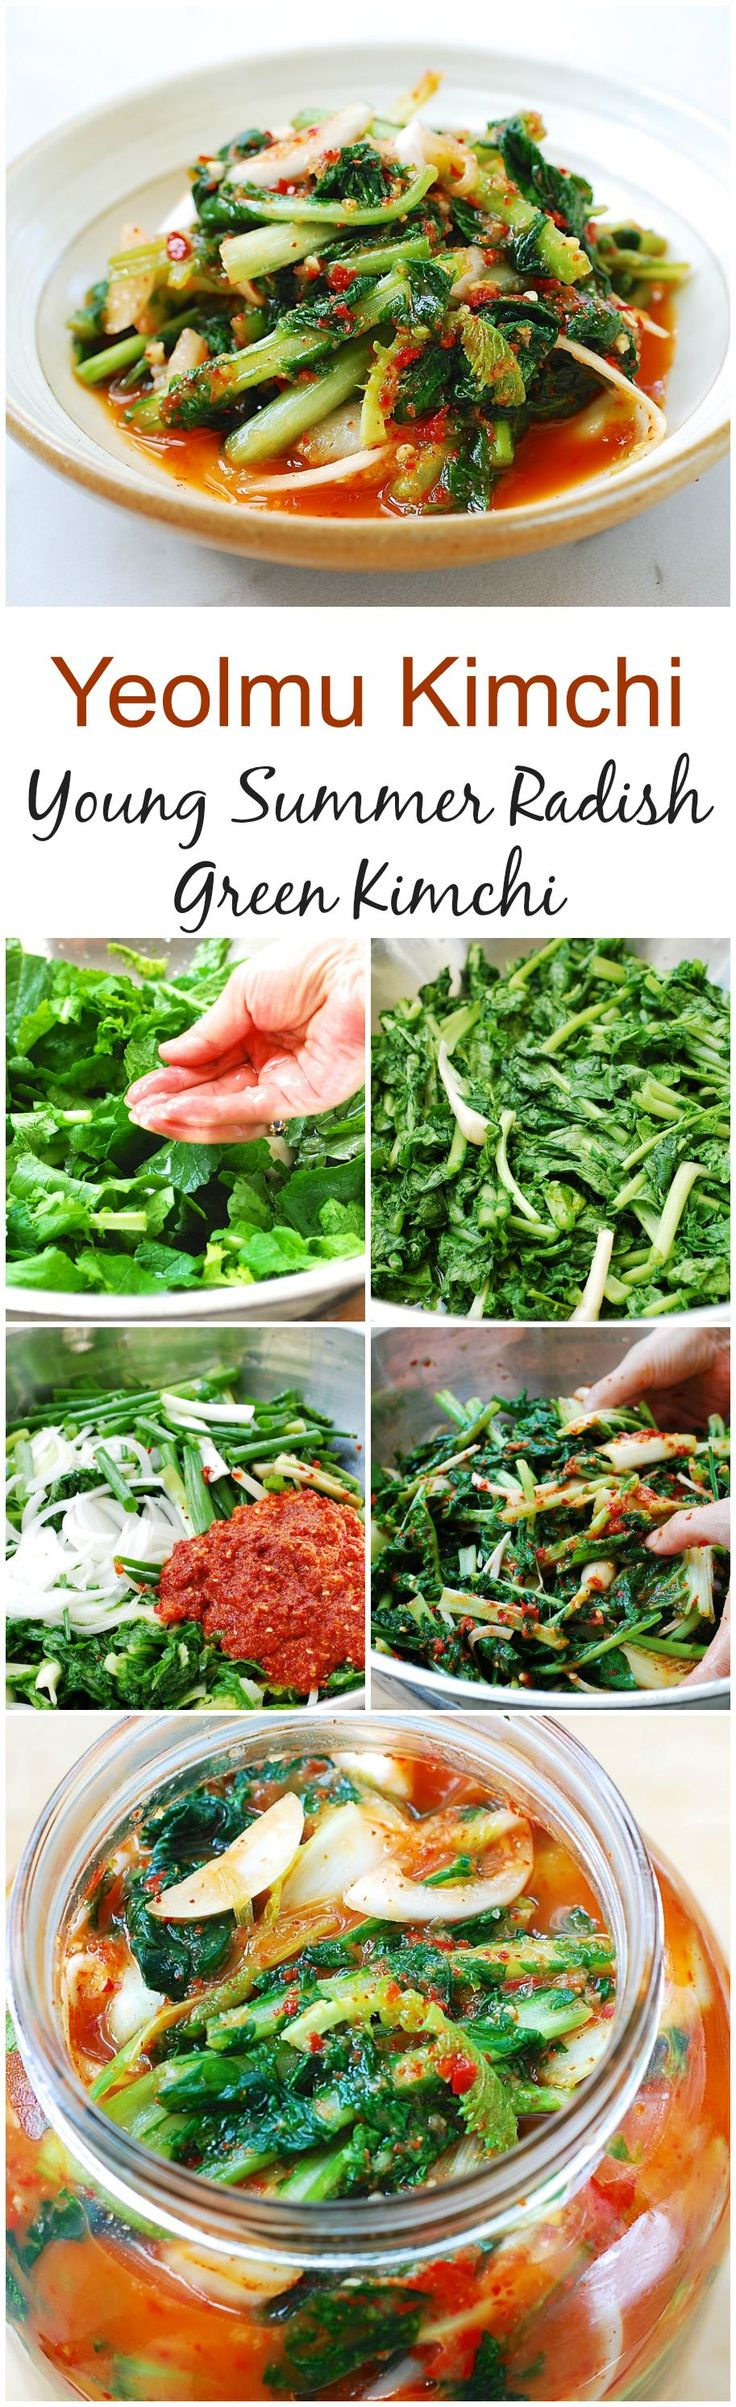 6610 best korean food recipes images on pinterest korean food crunchy refreshing and light kimchi made with korean young summer radish greens forumfinder Images